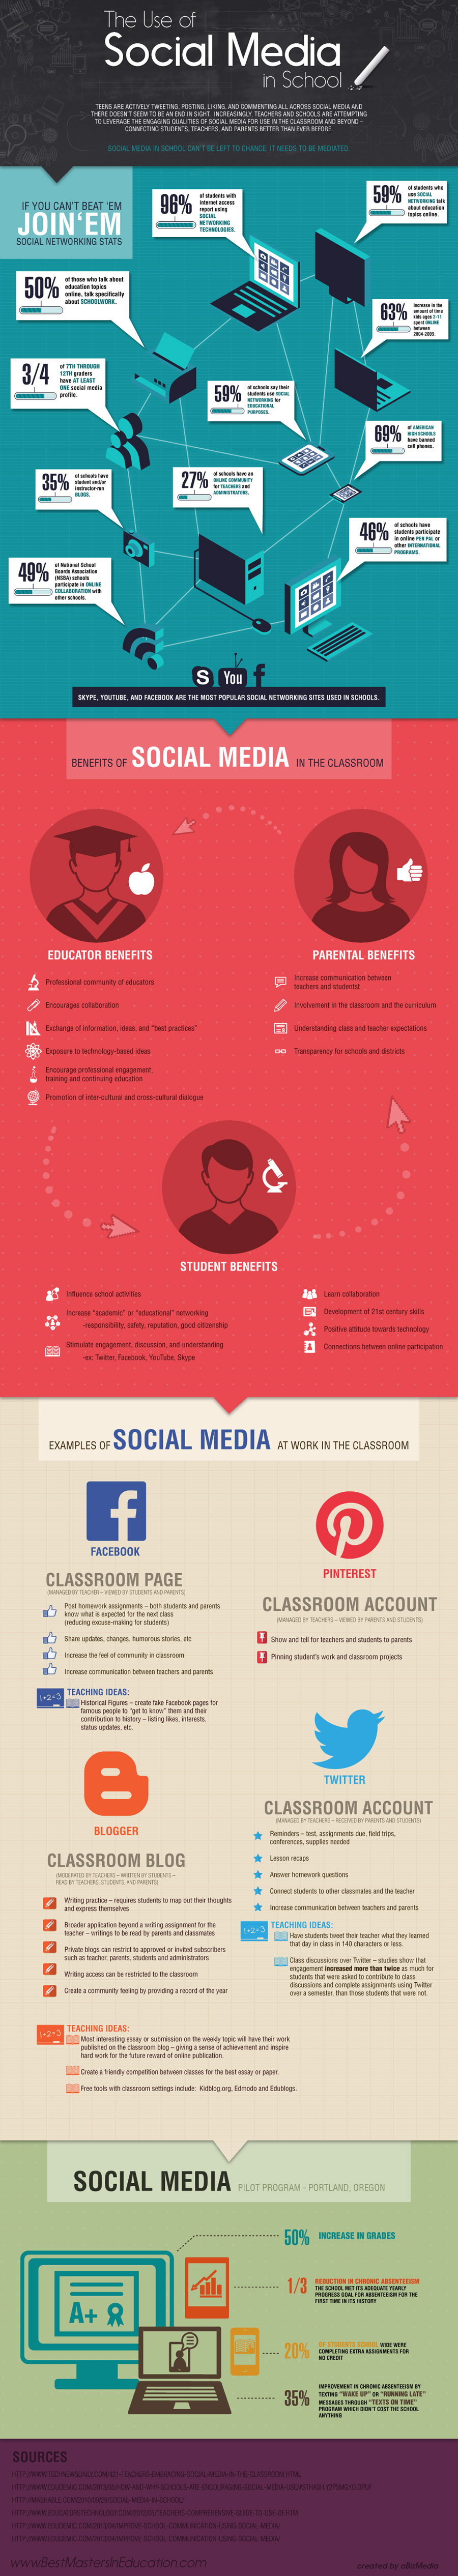 social networking in school infographic